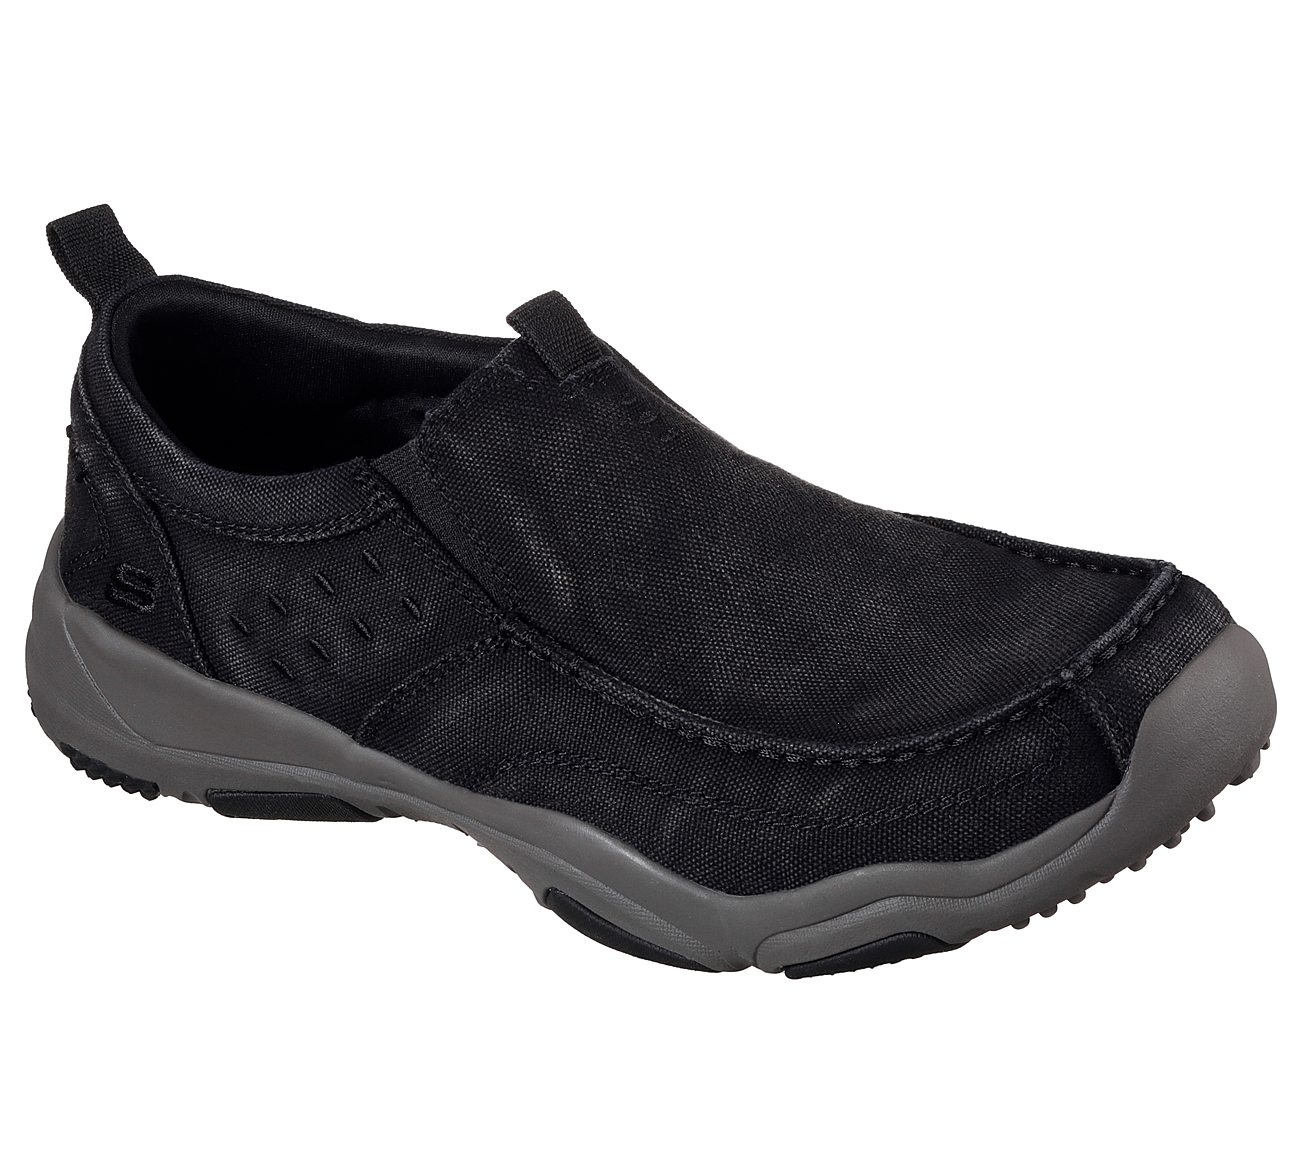 Buy SKECHERS Larson - Bolten USA Casuals Shoes only  93.00 7a58137d617